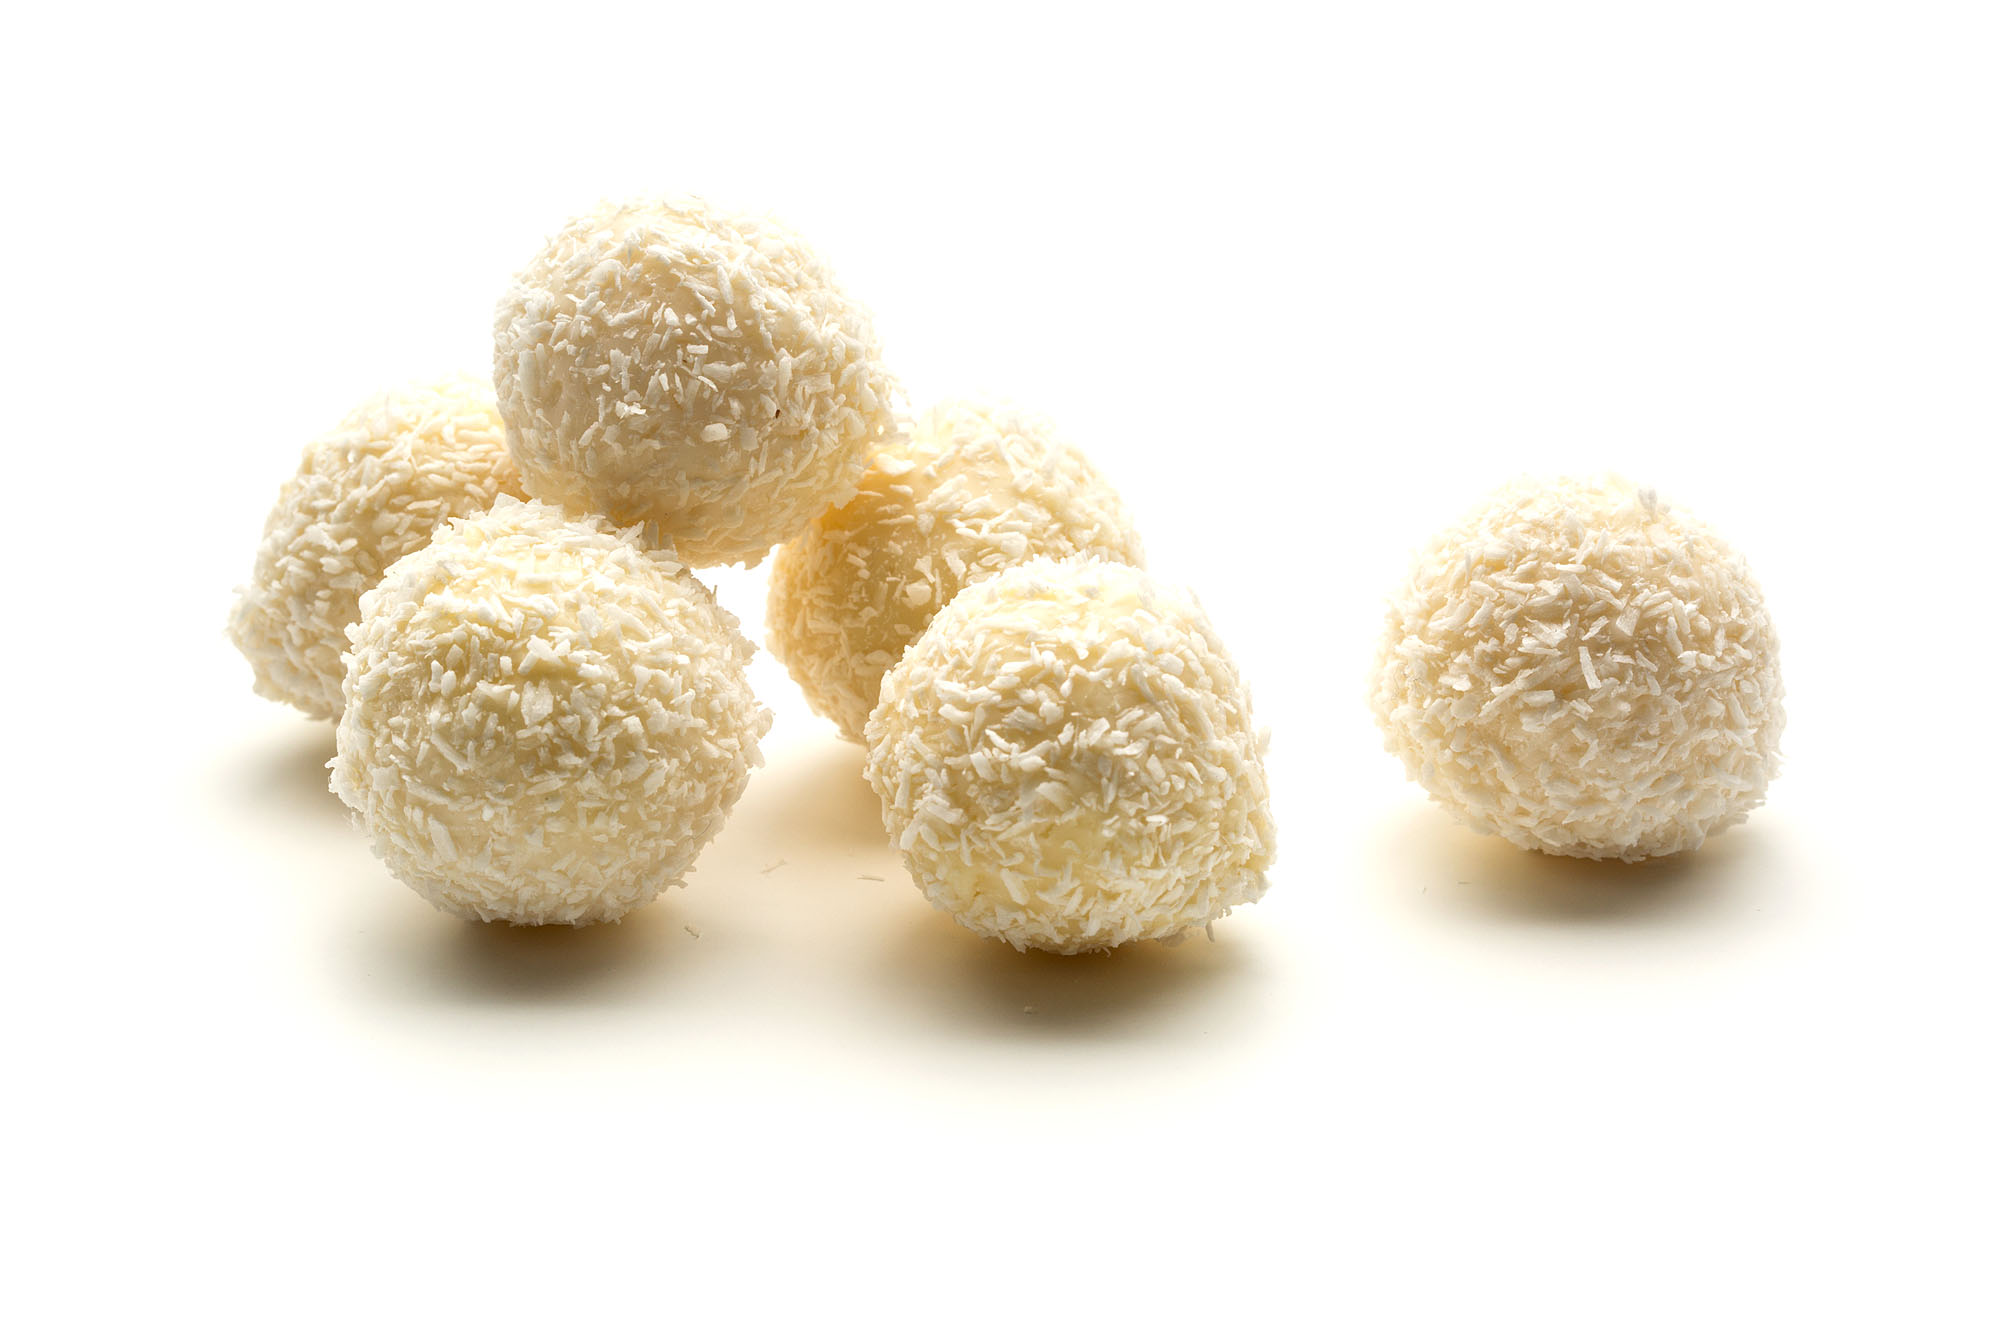 coconut and malibu truffle